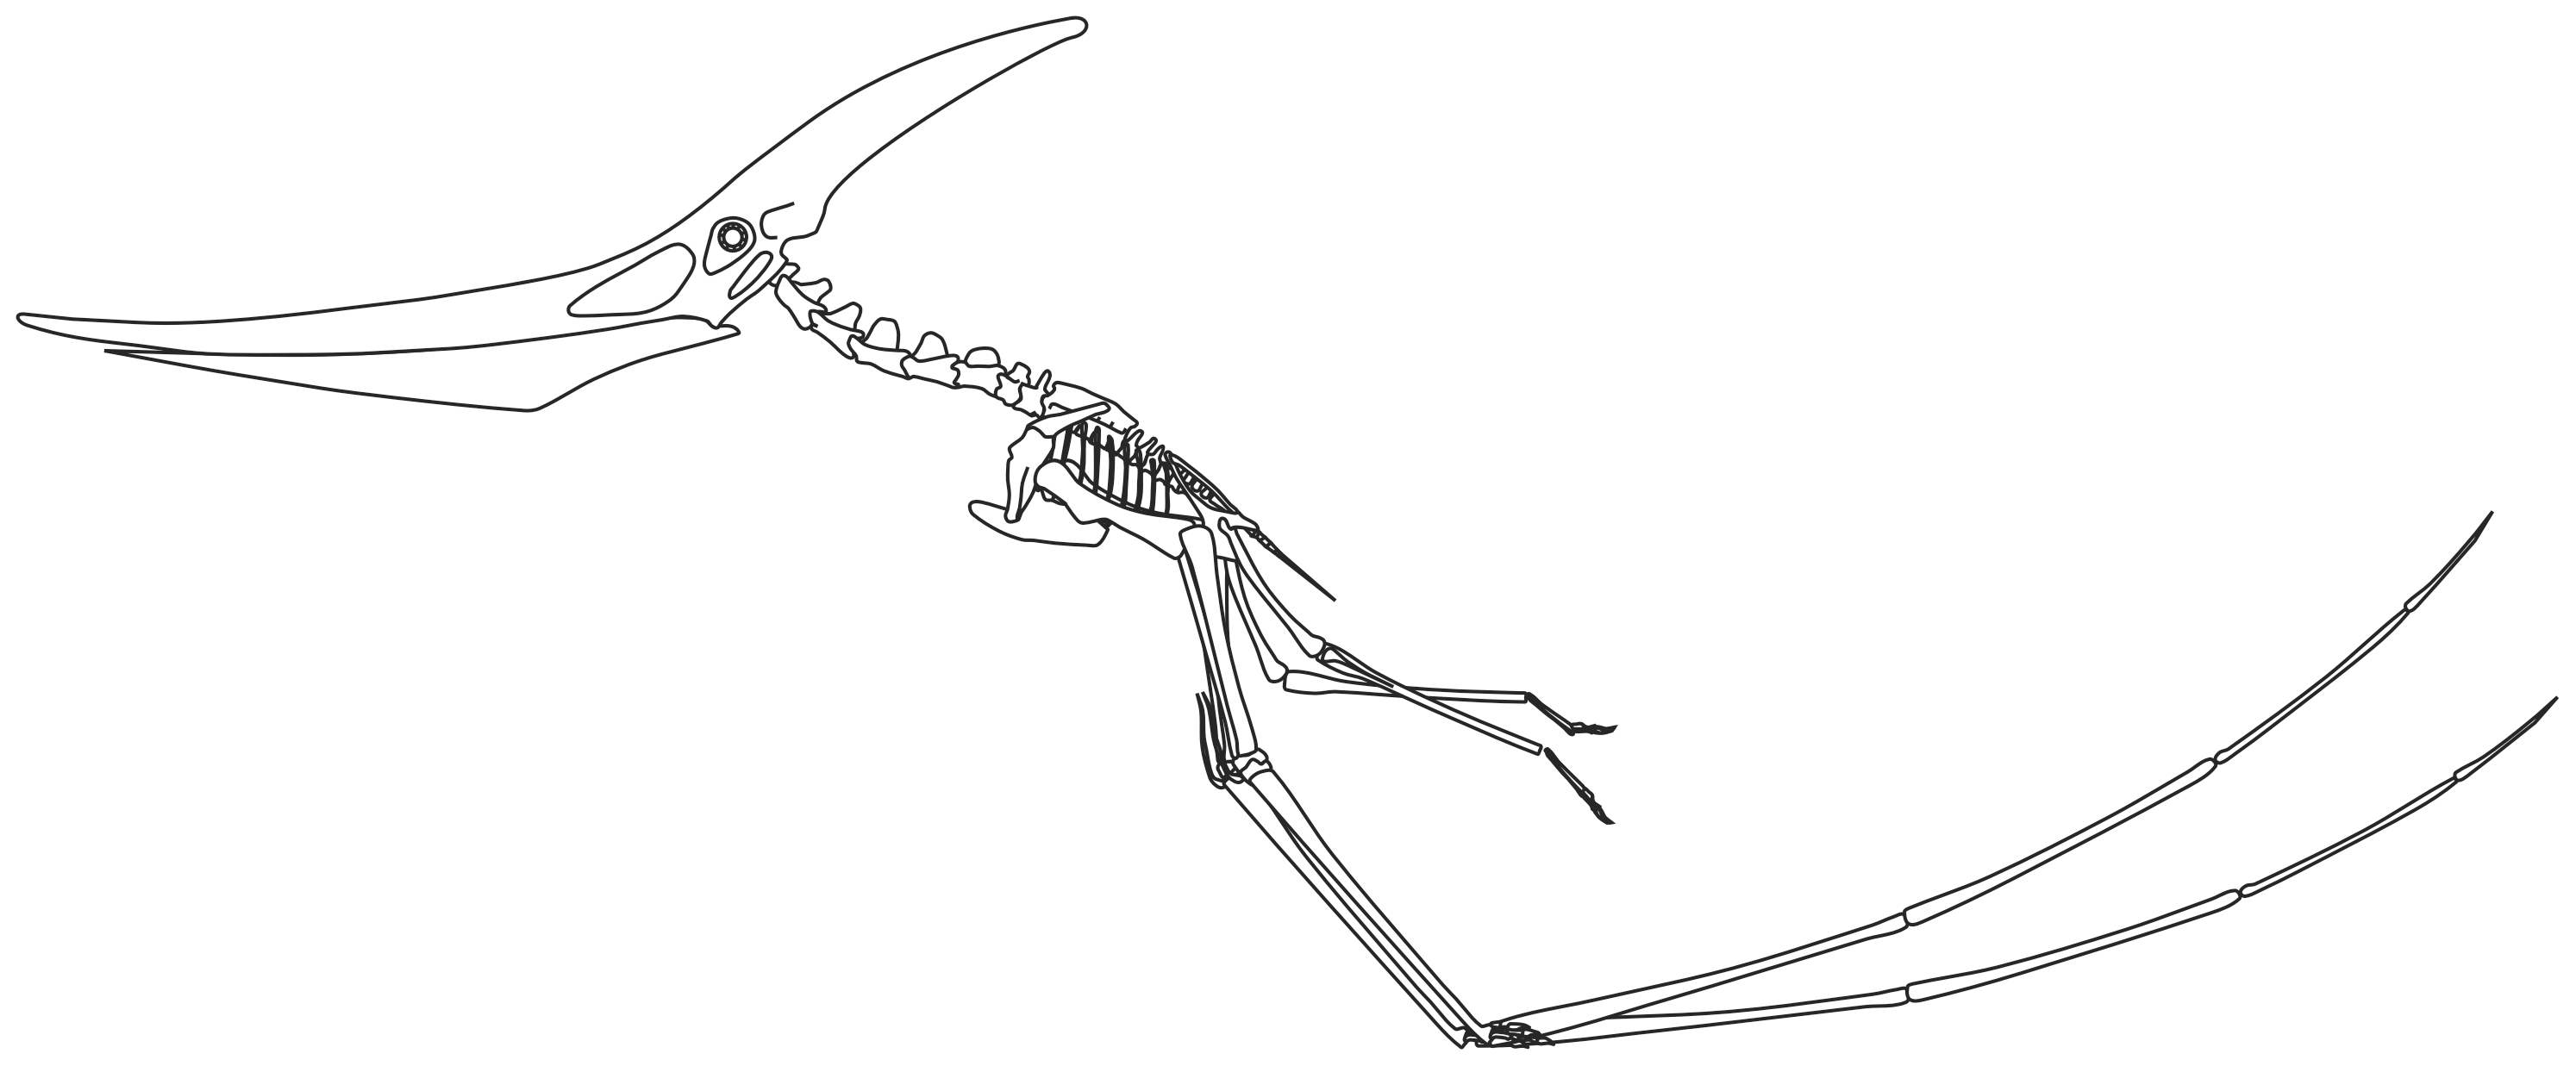 "Pterosaur Skeleton in ""vaulting"" position. Image from ""On the Size and Flight Diversity of Giant Pterosaurs, the Use of Birds as Pterosaur Analogues and Comments on Pterosaur Flightlessness"", Witton and Habib"